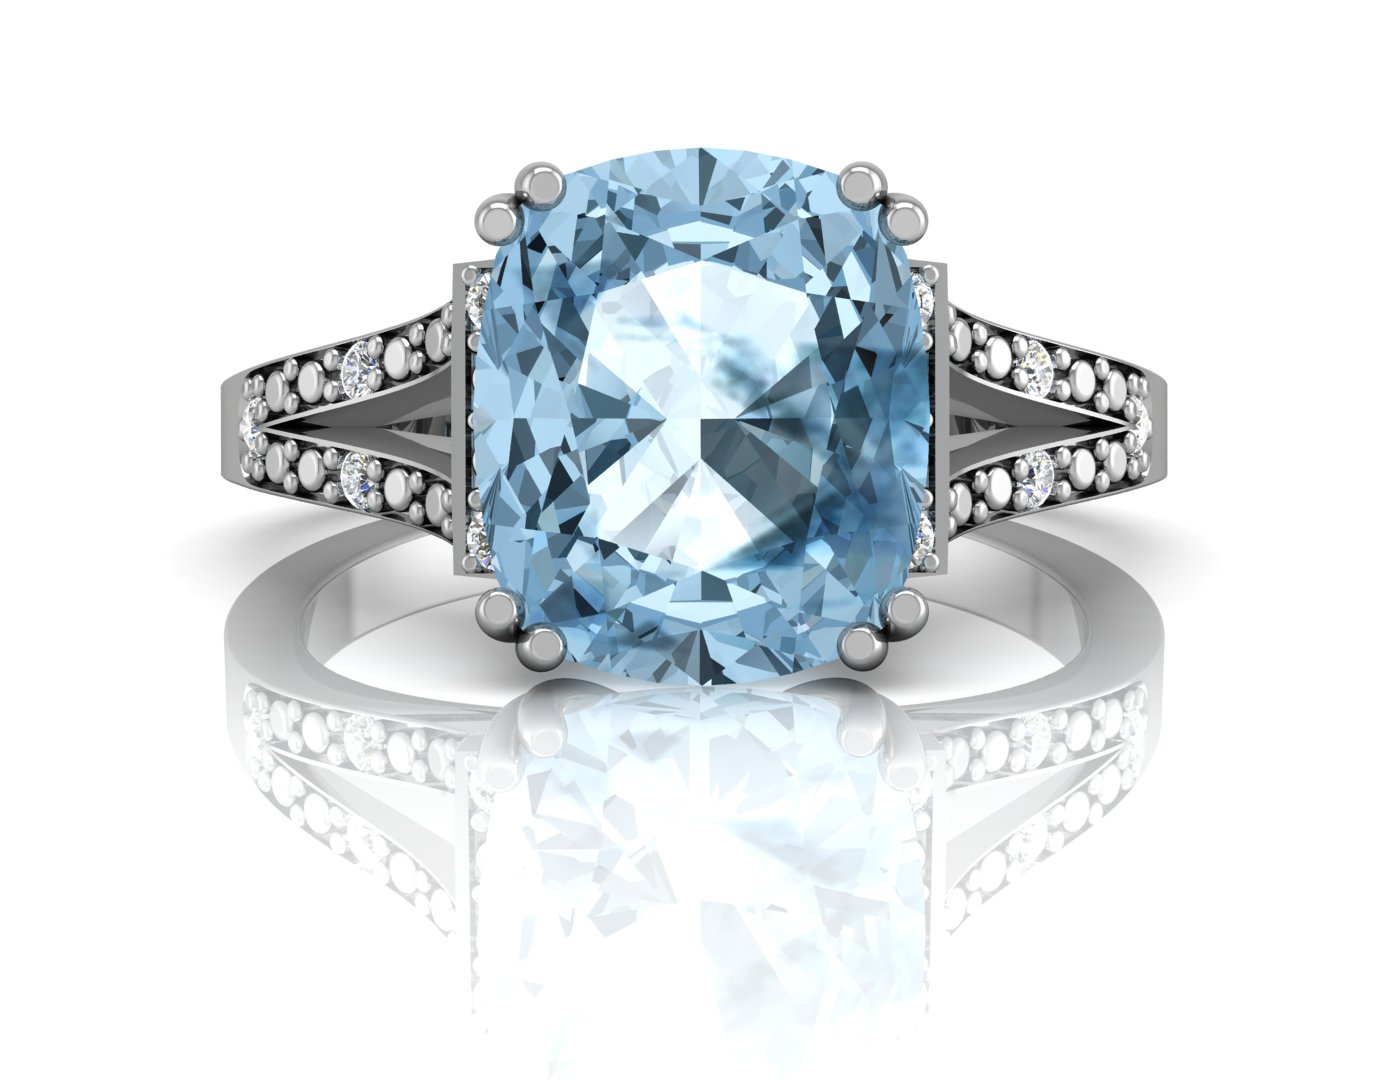 oval elegant london band solid art stone cut engagement fullxfull deco ring gem diamond blue set il topaz matching gold